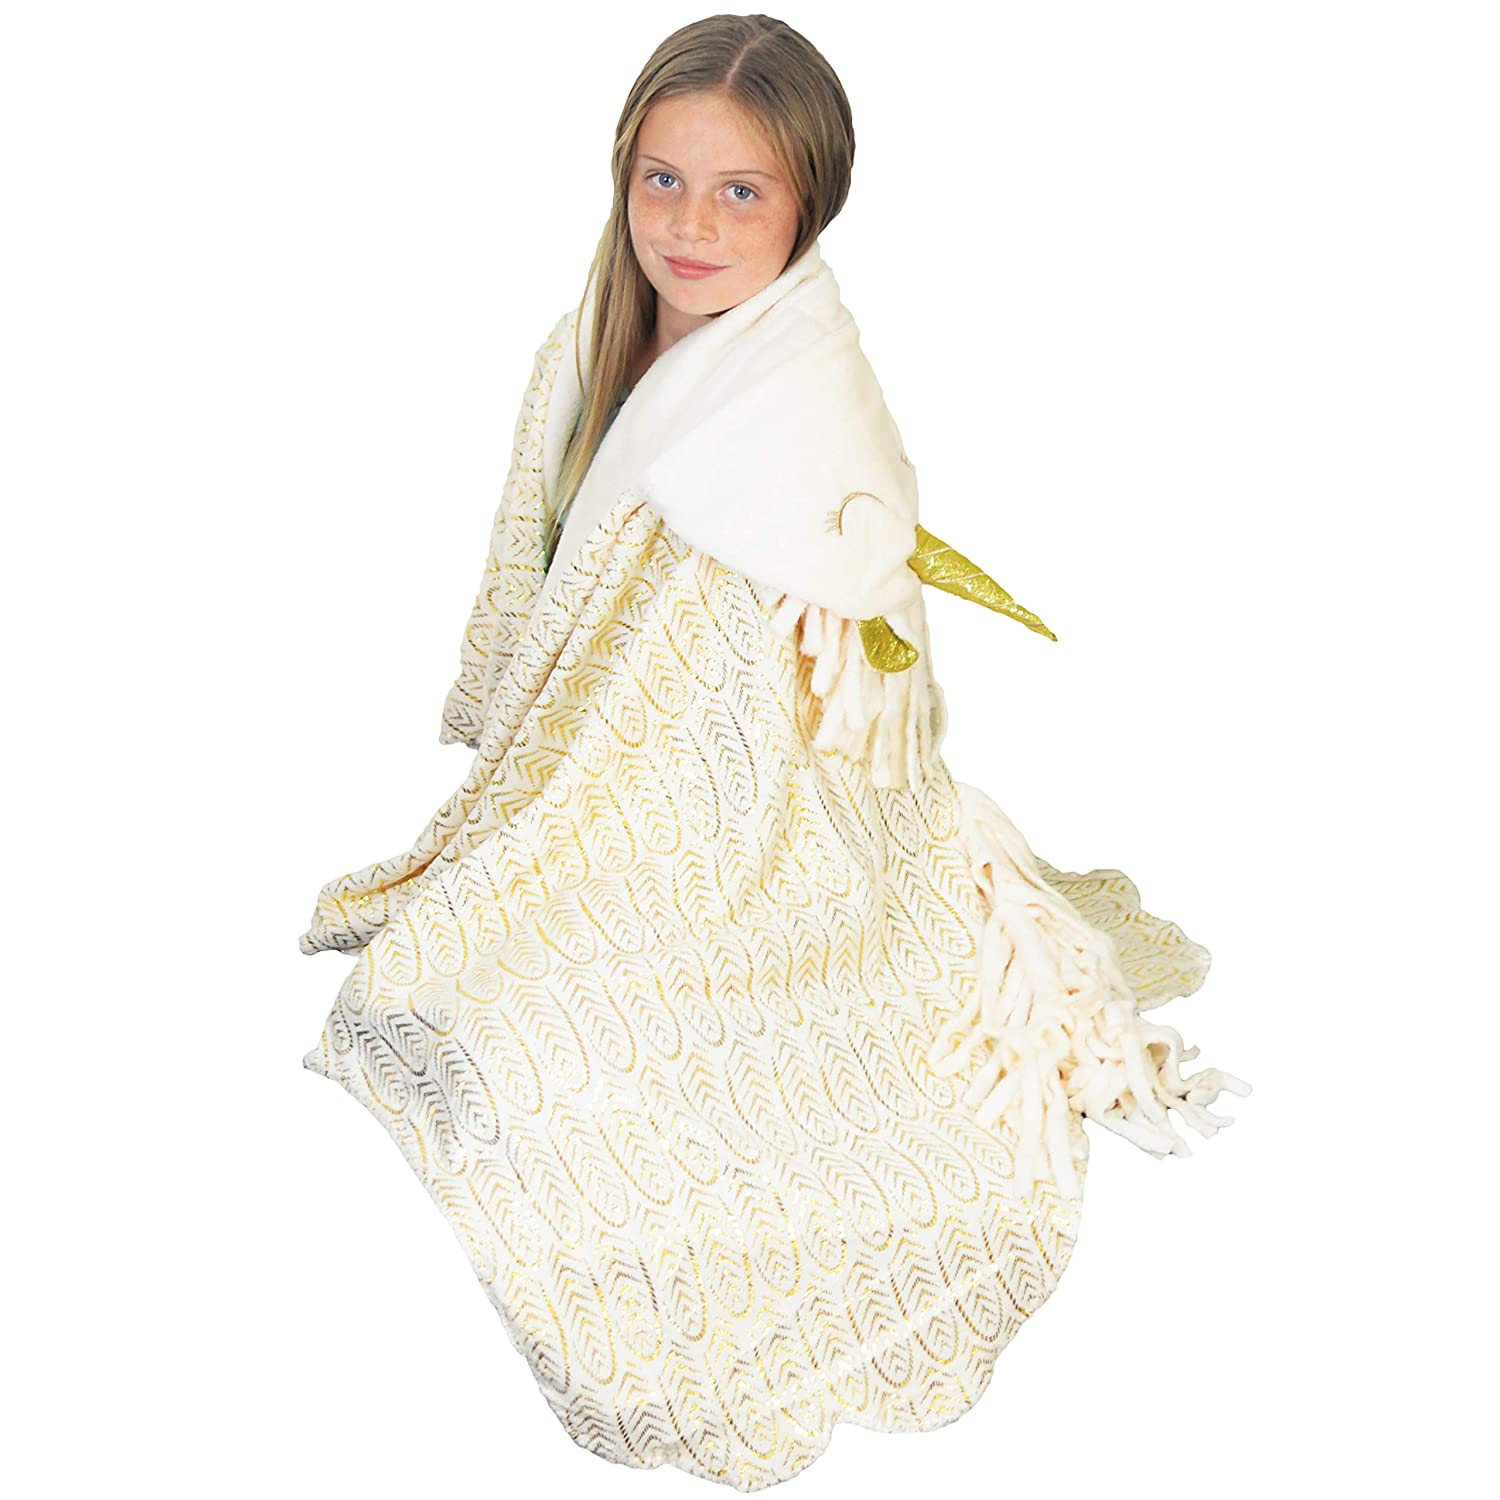 DreamsBe Hooded Unicorn Blanket for Girls - Kids Soft Plush Wearable Hoodie Bankets - Comfortable Animal Hood Throw Wrap with Shimmering Horn and Gold Foil Design for Pretend Play or Sleep